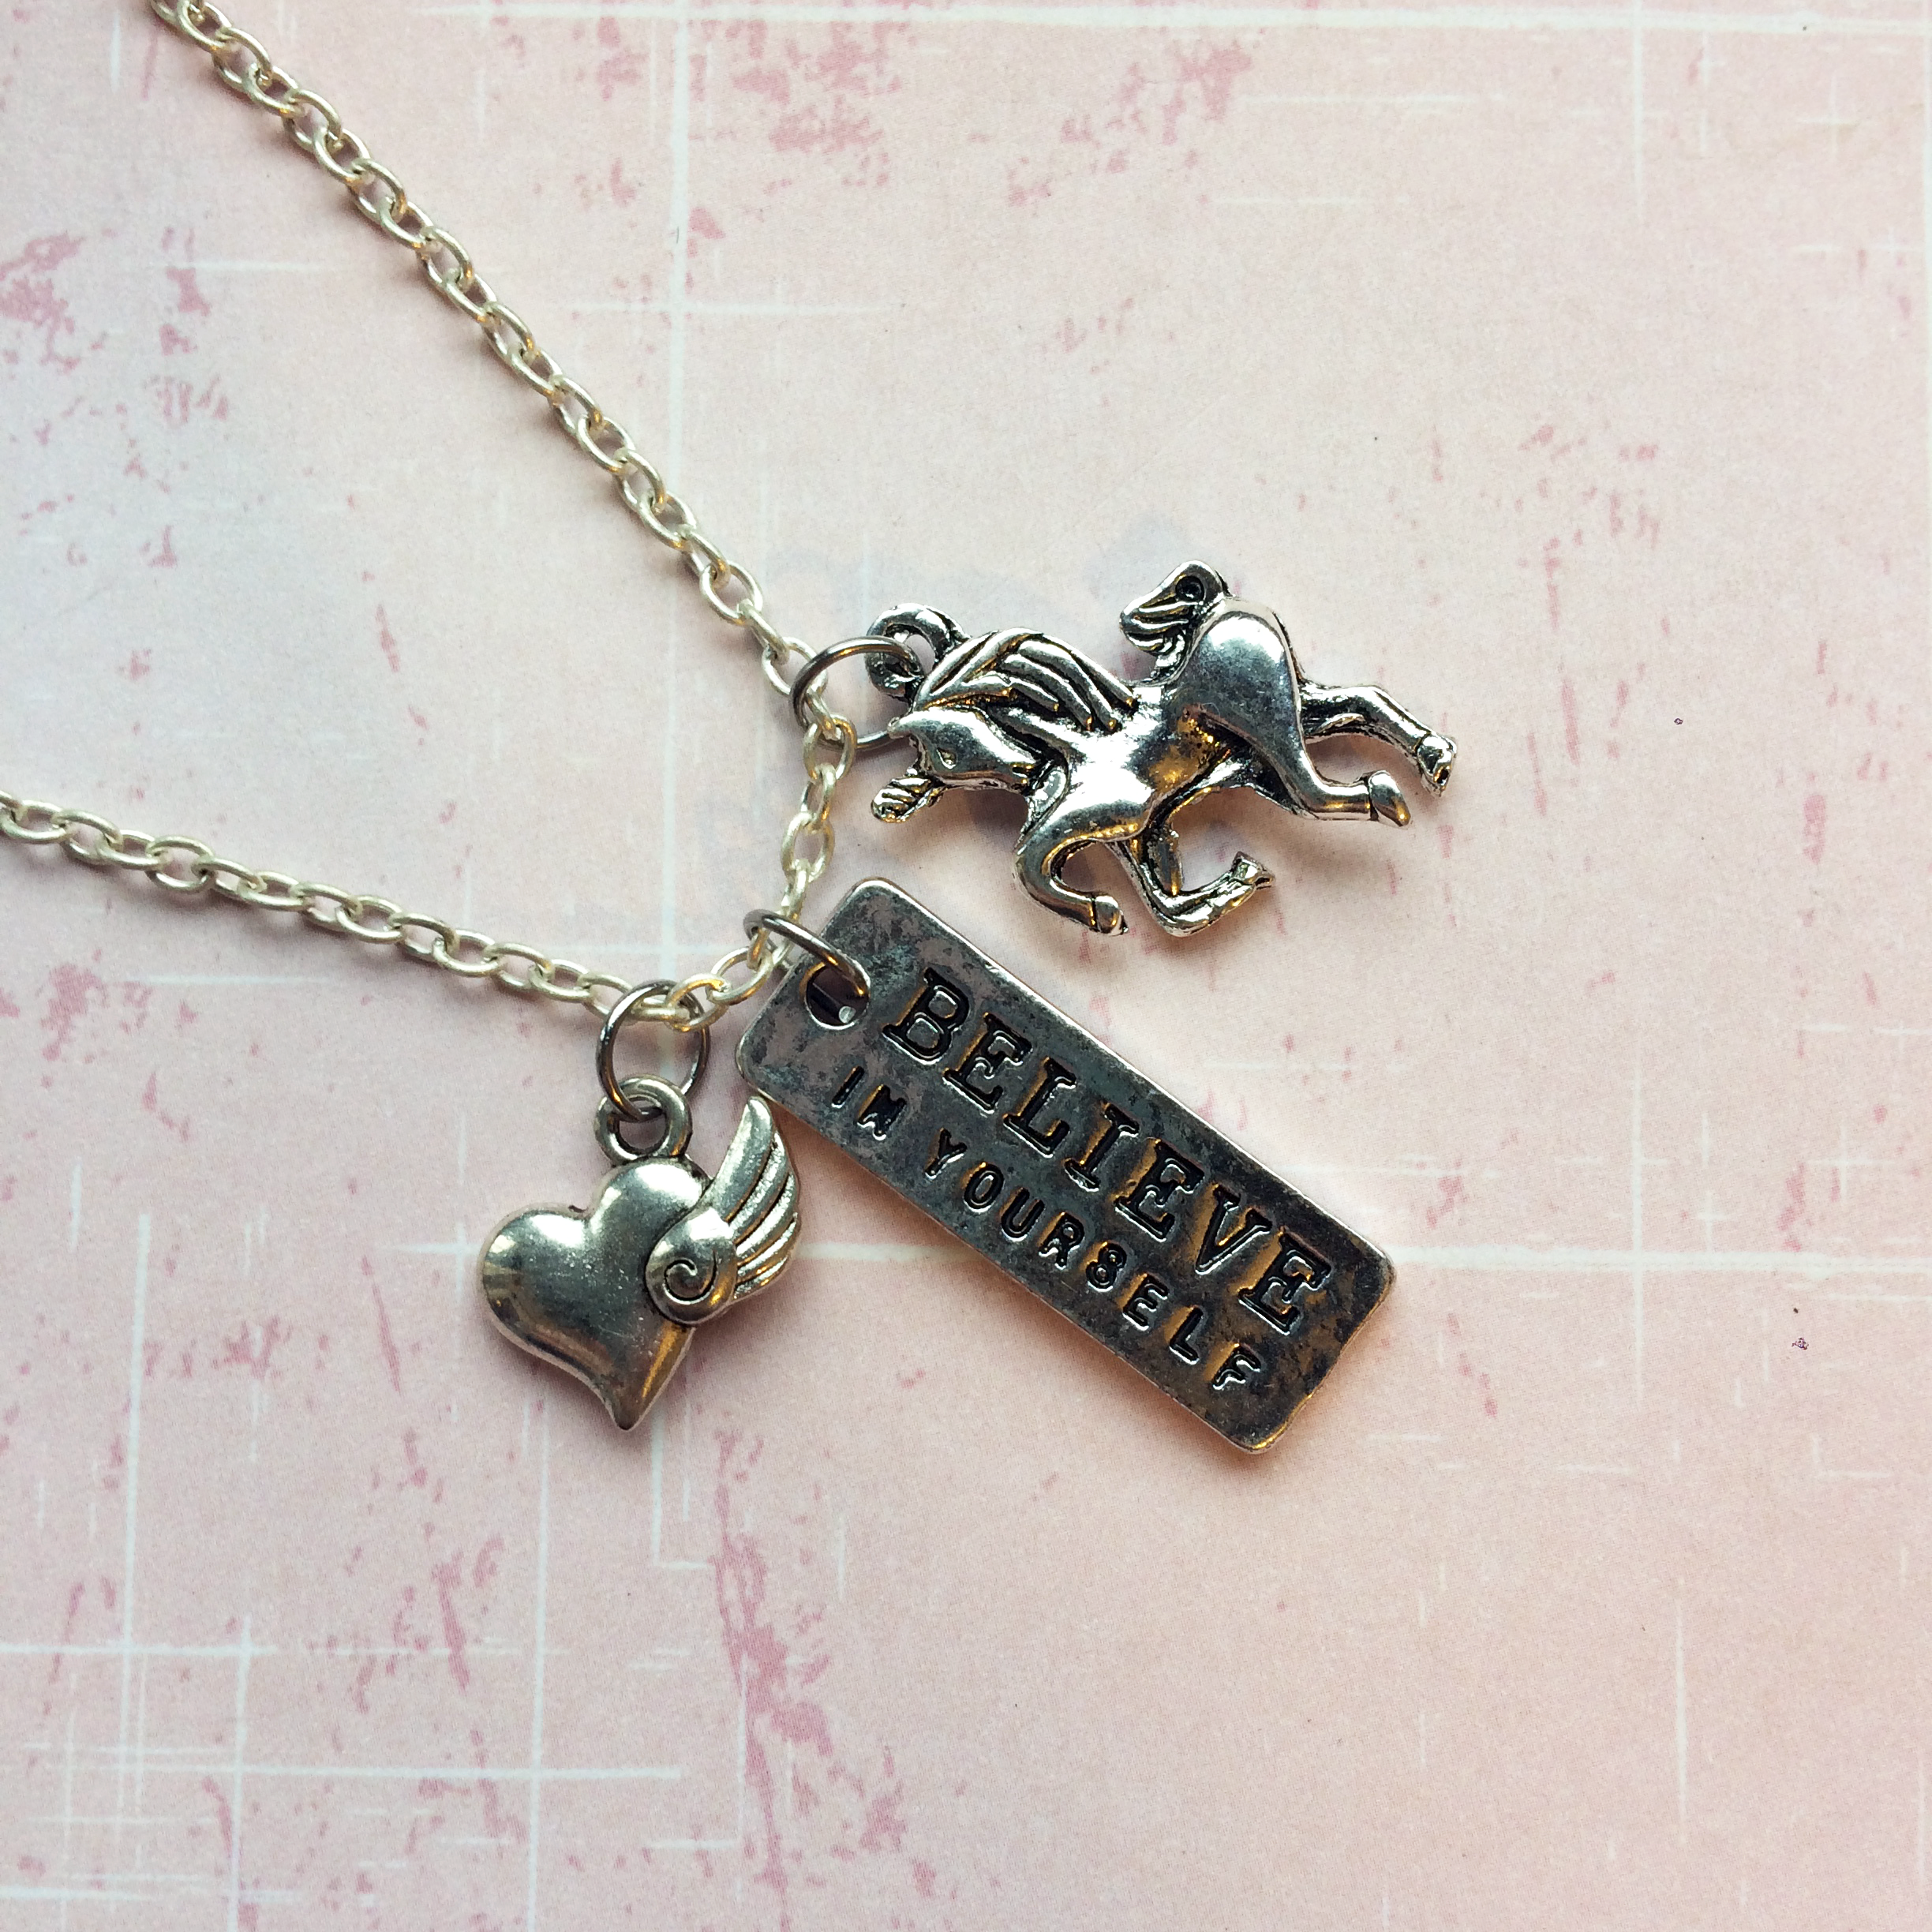 morse category julia love huckberry lover szendrei store necklace code original p